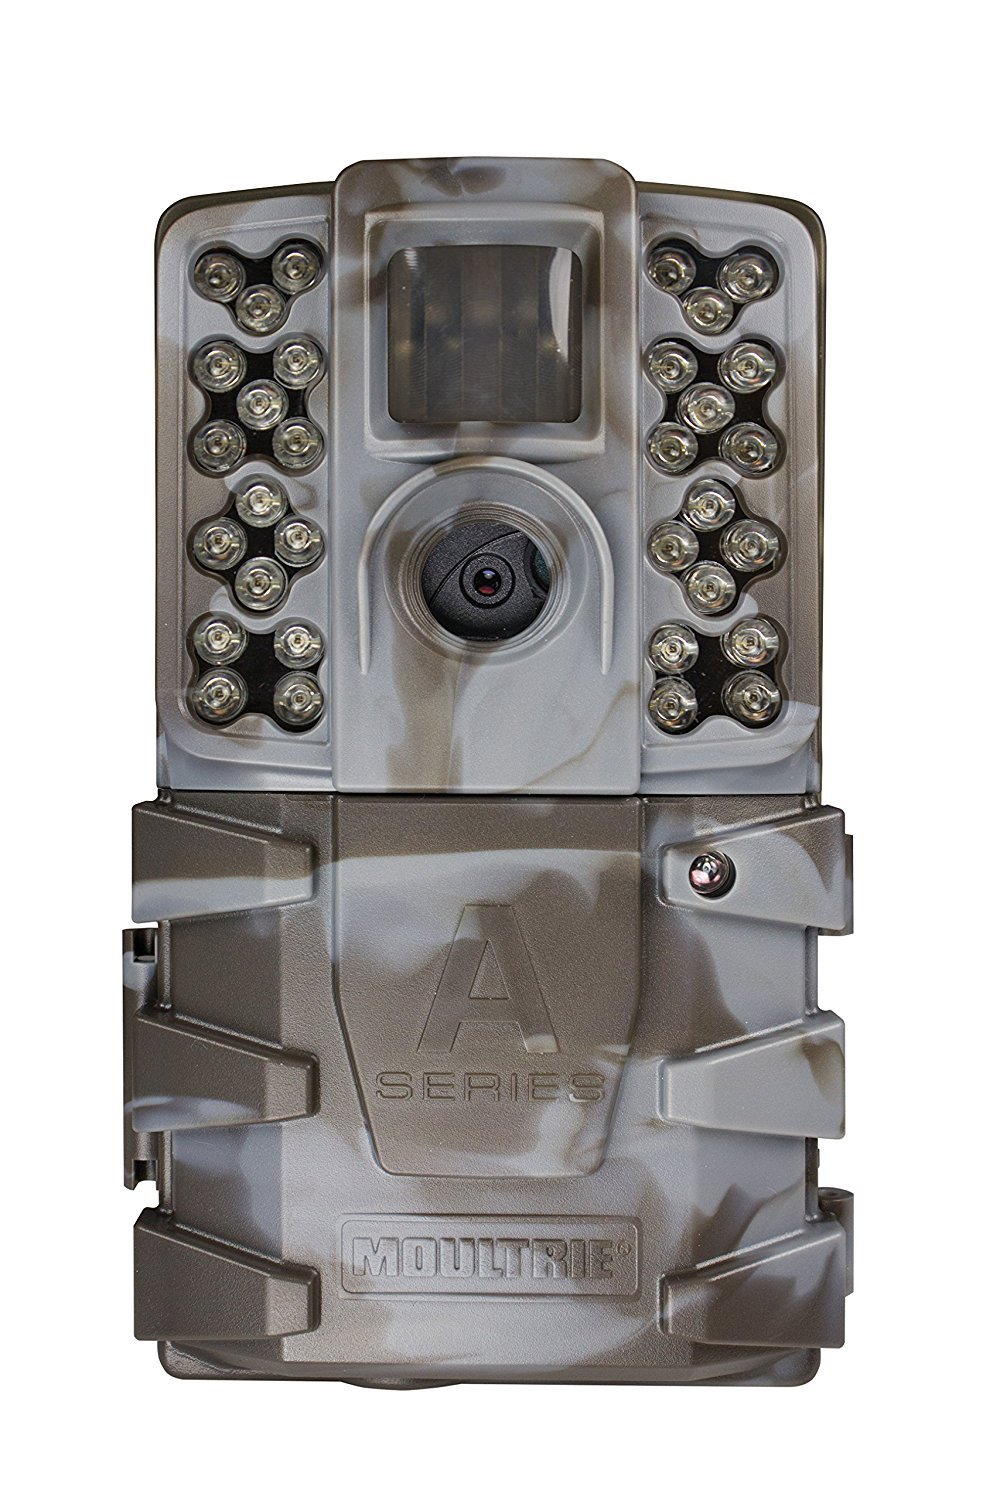 Moultrie A-35 (2017) Game Camera | All Purpose Series | 0.7s Trigger Speed | Moultrie Mobile Compatible by Moultrie